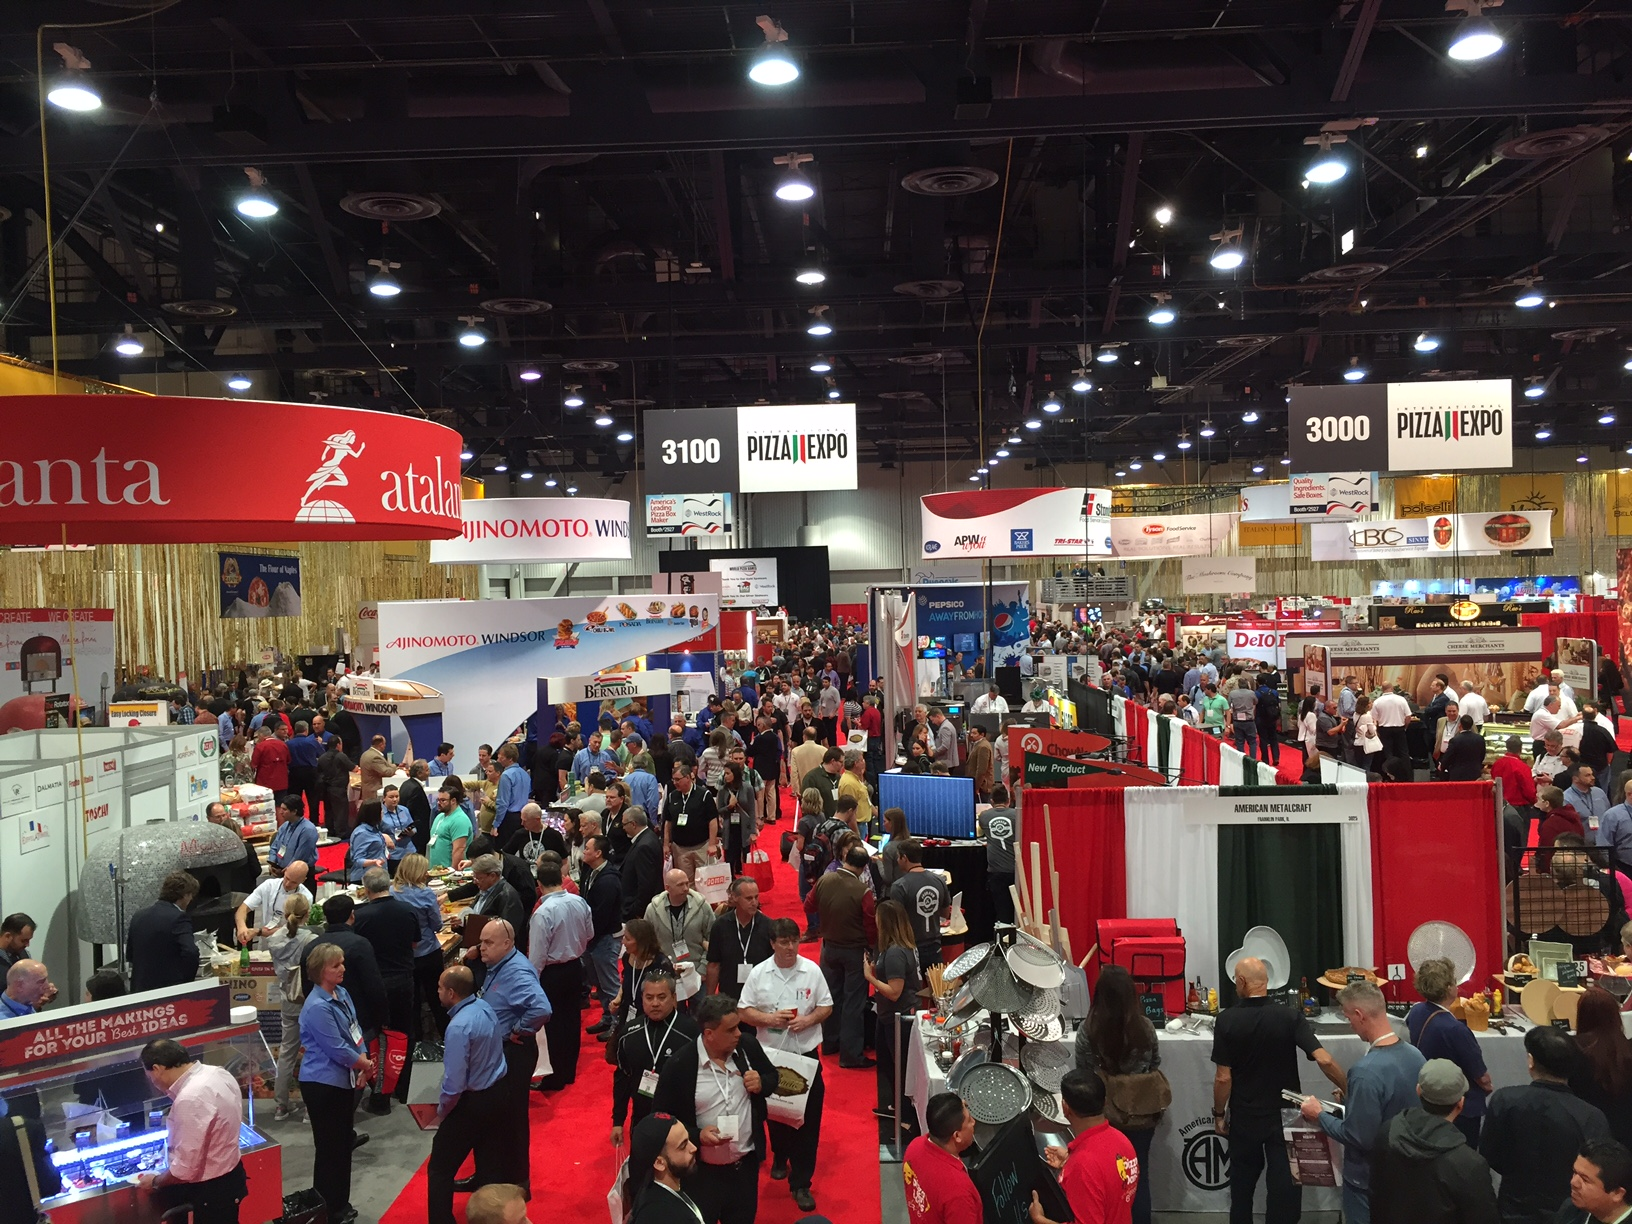 Pizza Expo Day One was a huge success with a packed show floor.